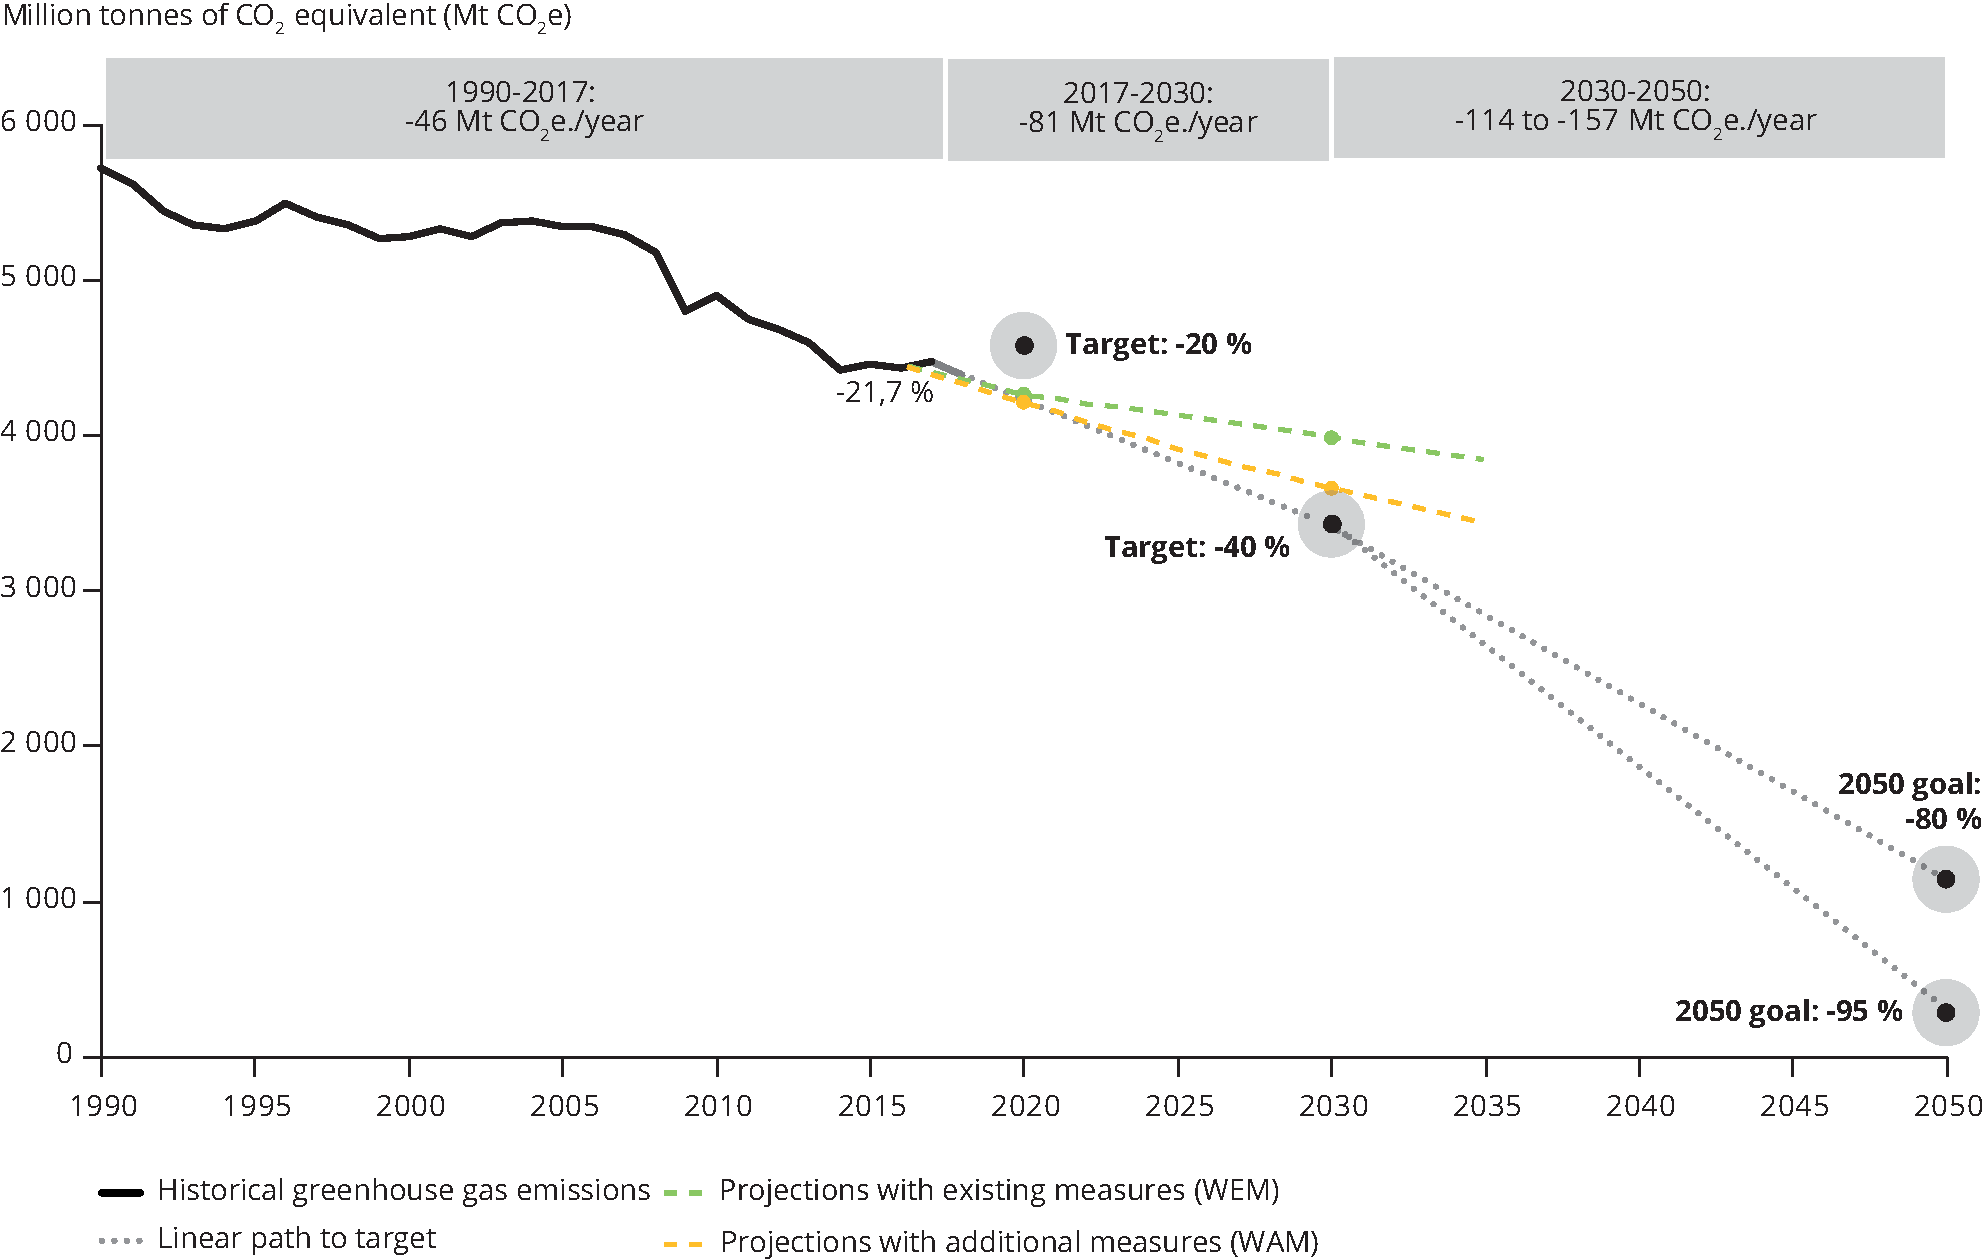 Greenhouse gas emission trend projections and target